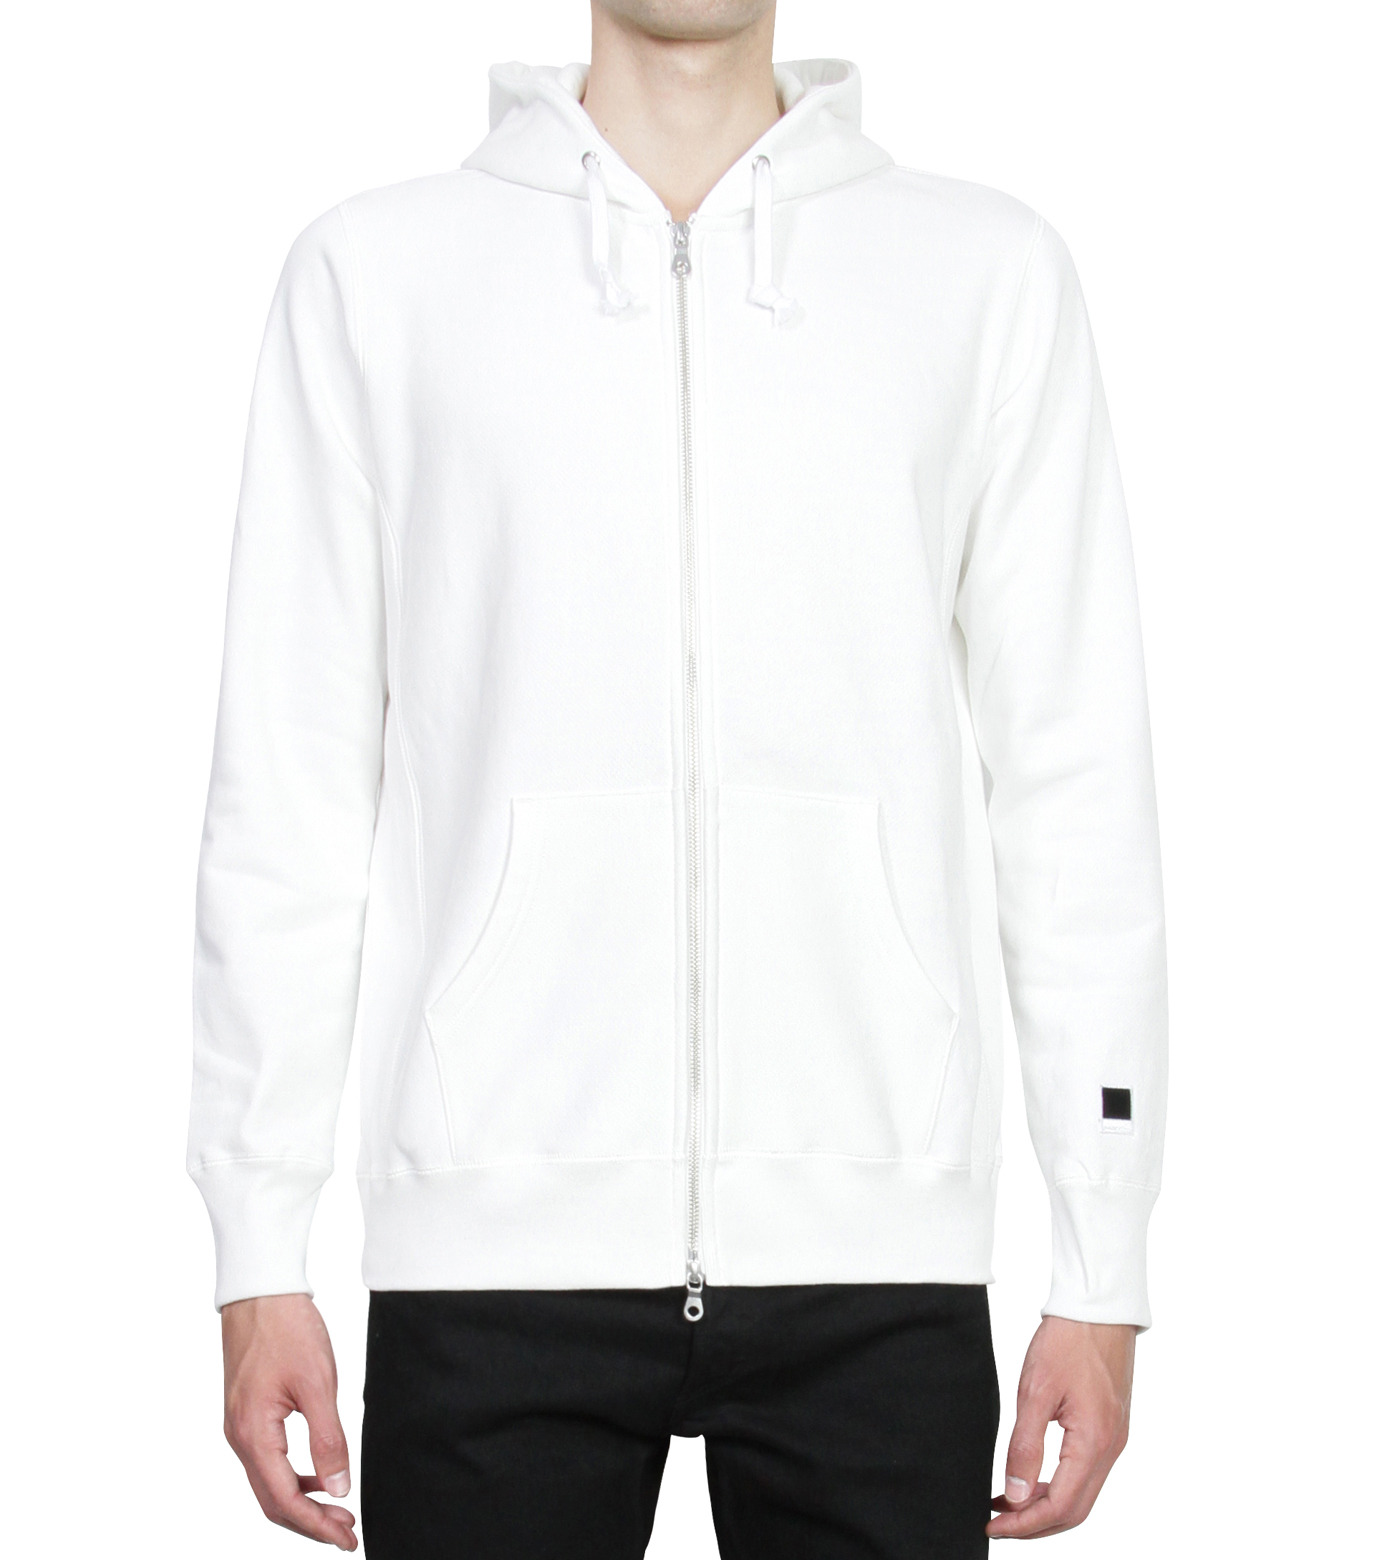 HL HEDDIE LOVU(エイチエル・エディールーヴ)のHL Hooded ZIP-WHITE(カットソー/cut and sewn)-16A92007-4 拡大詳細画像1